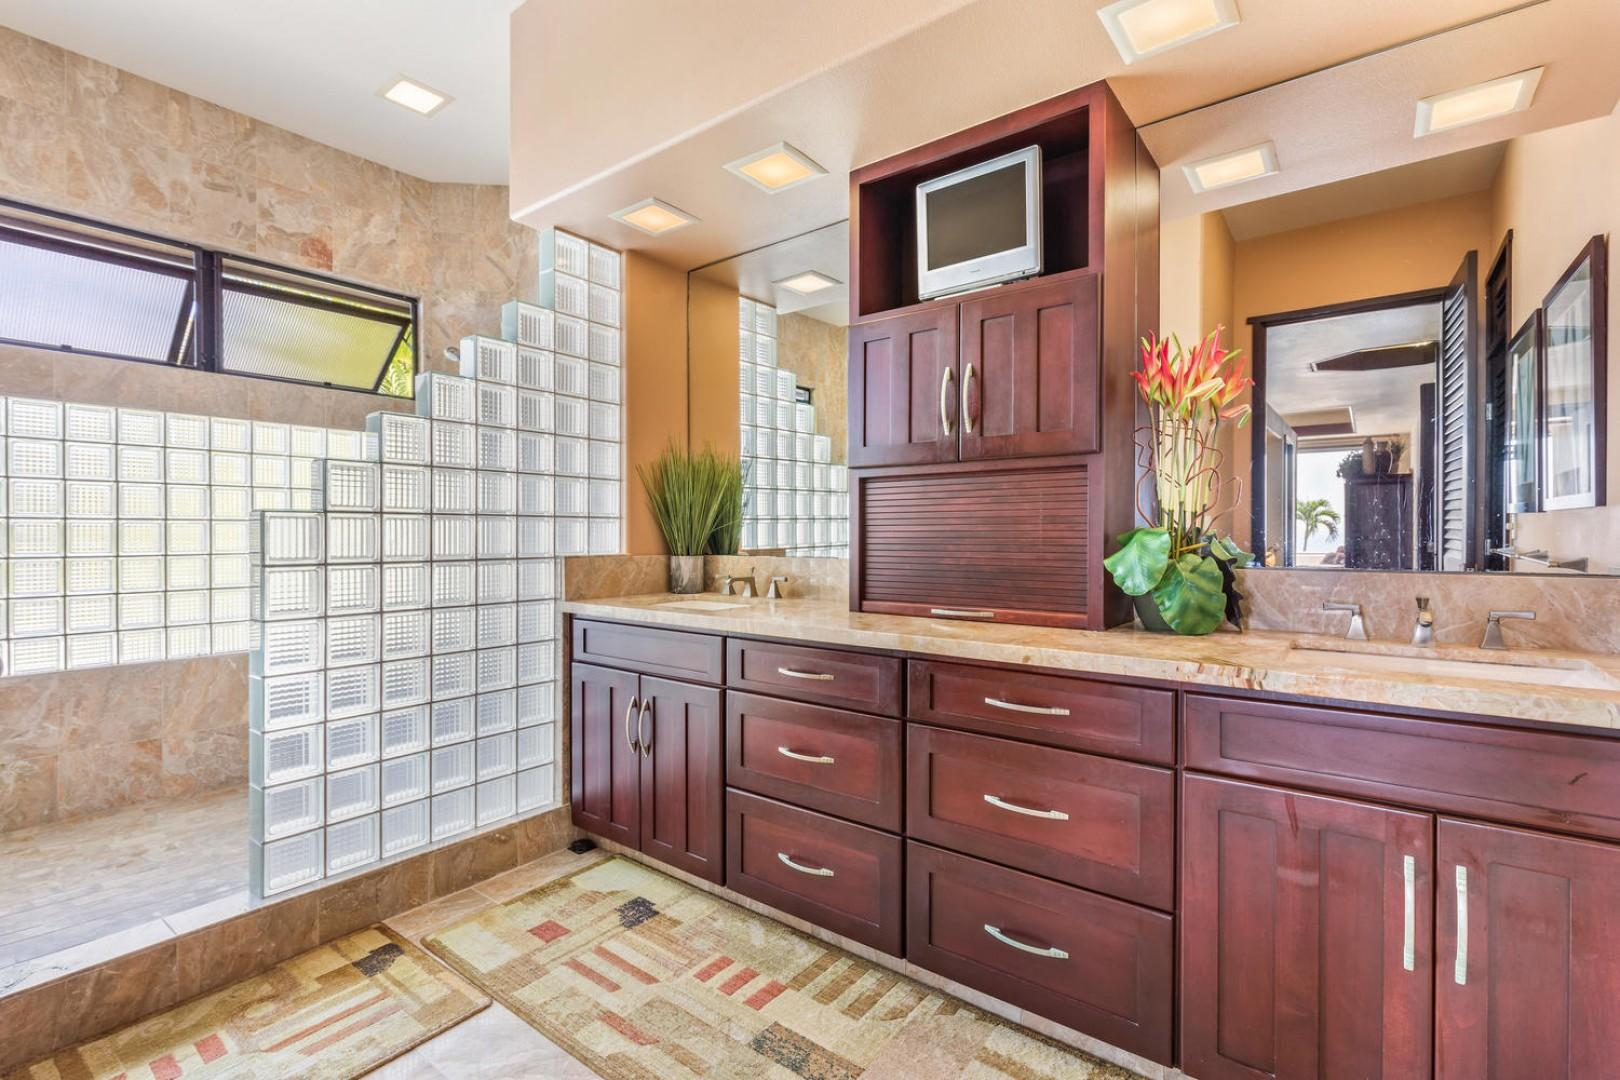 Master bath with dual vanities, soaking tub, and walk in shower